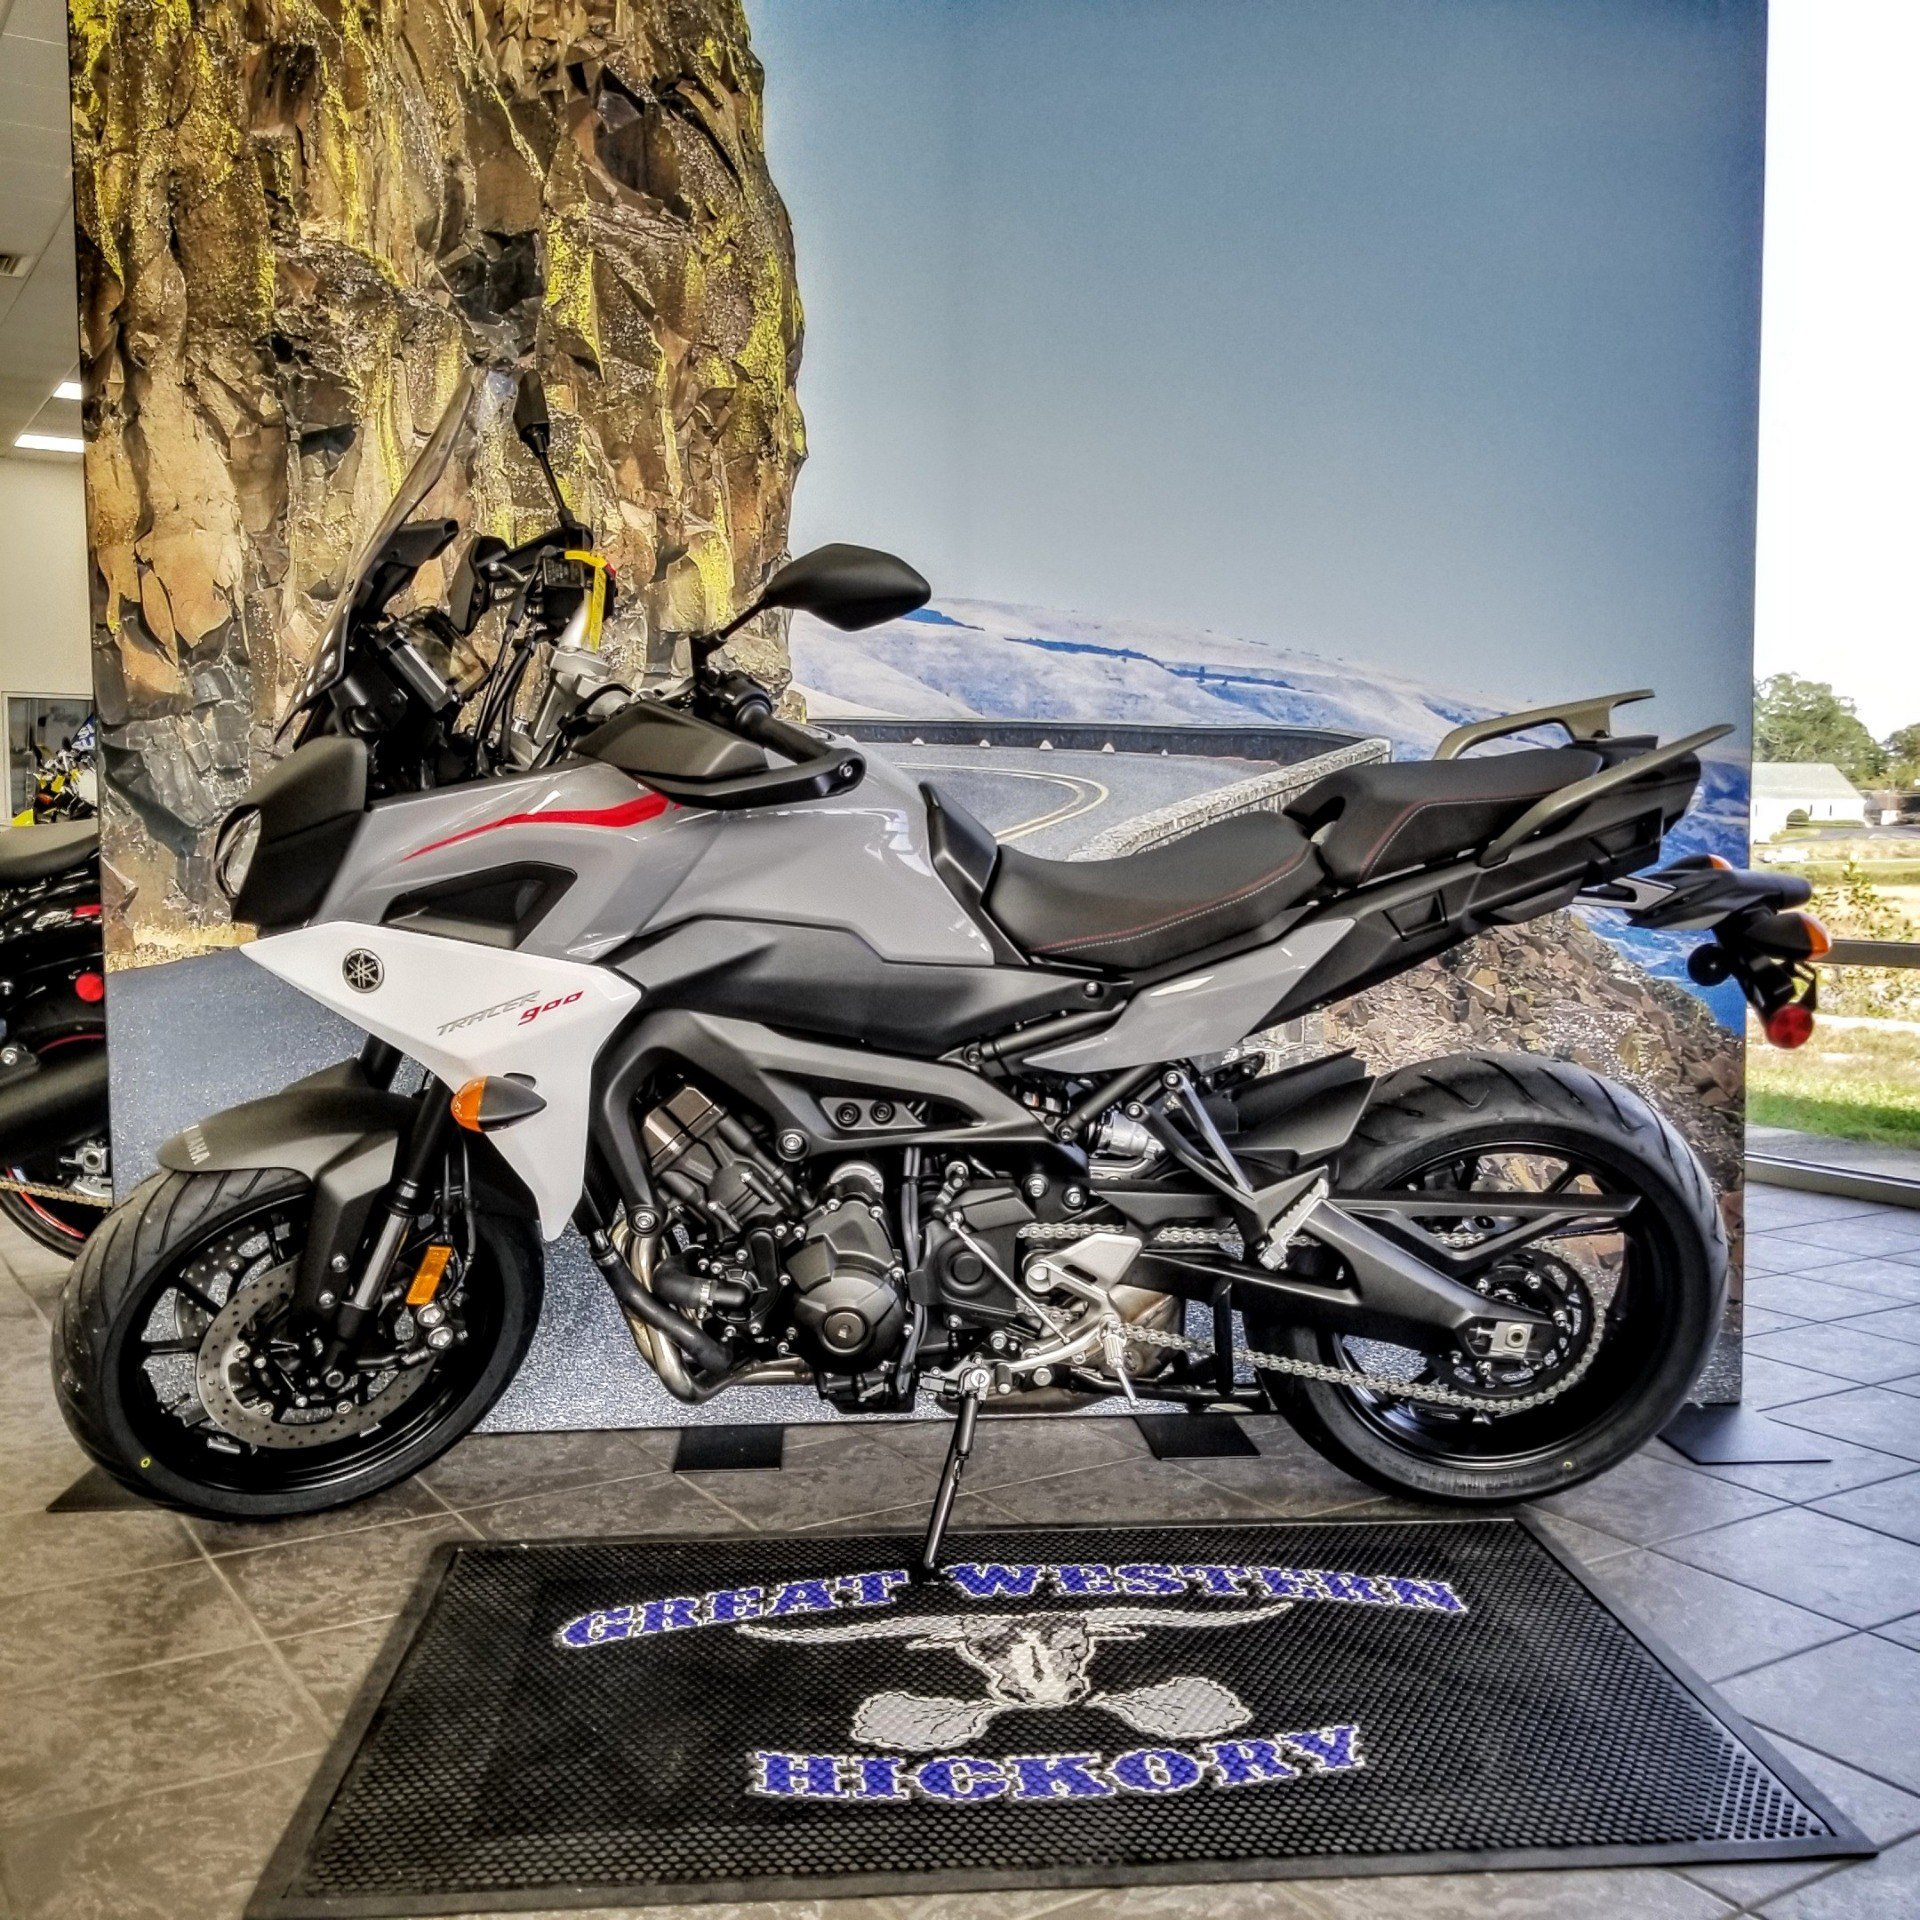 2019 Yamaha Tracer 900 in Hickory, North Carolina - Photo 1